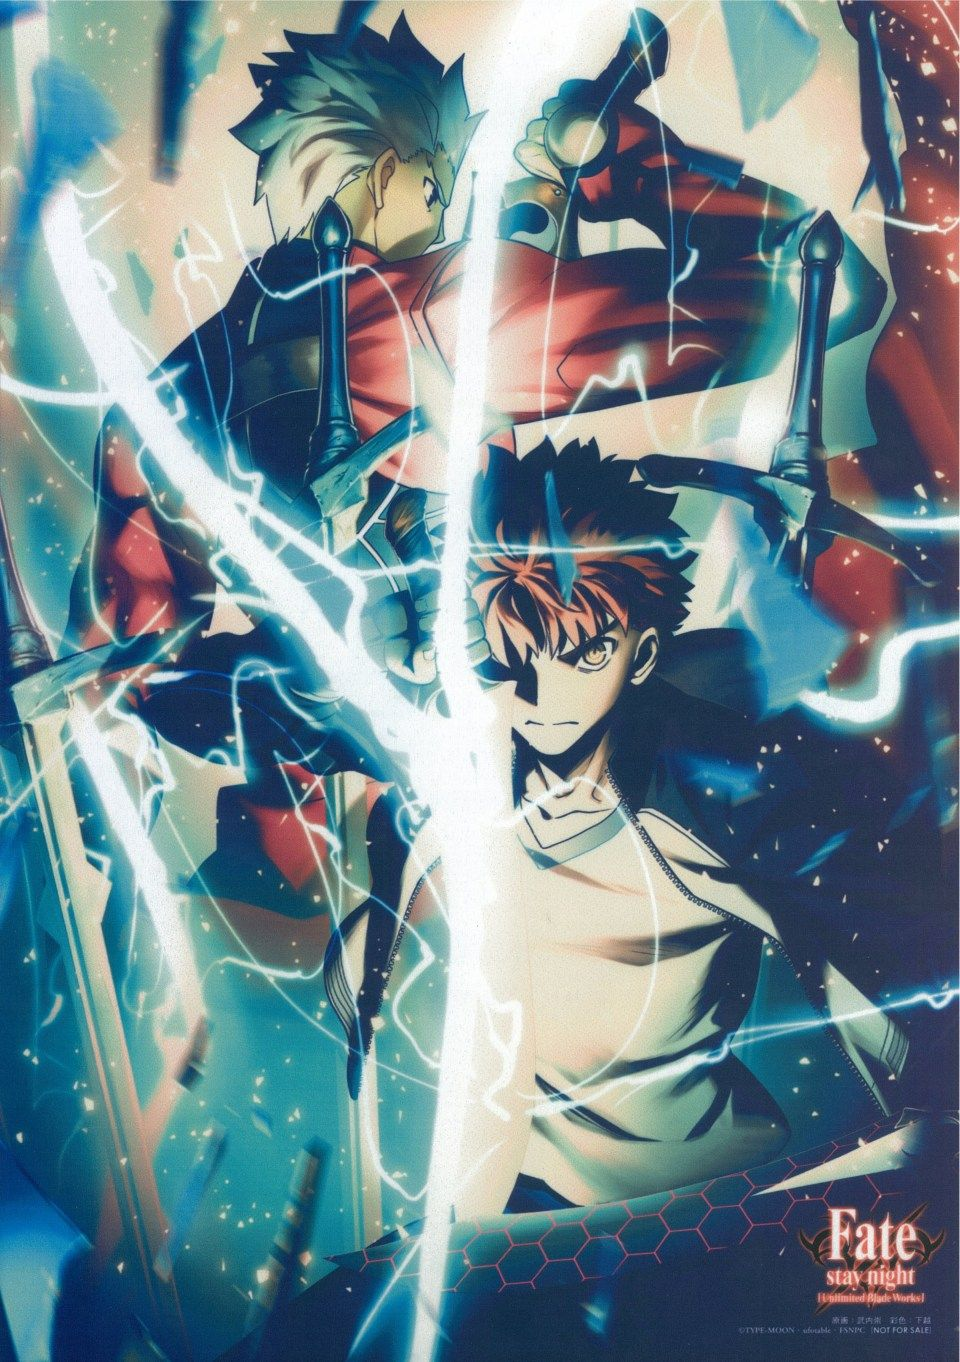 Five Top Risks Of Comics Wallpaper Anime Fate Stay Night Fate